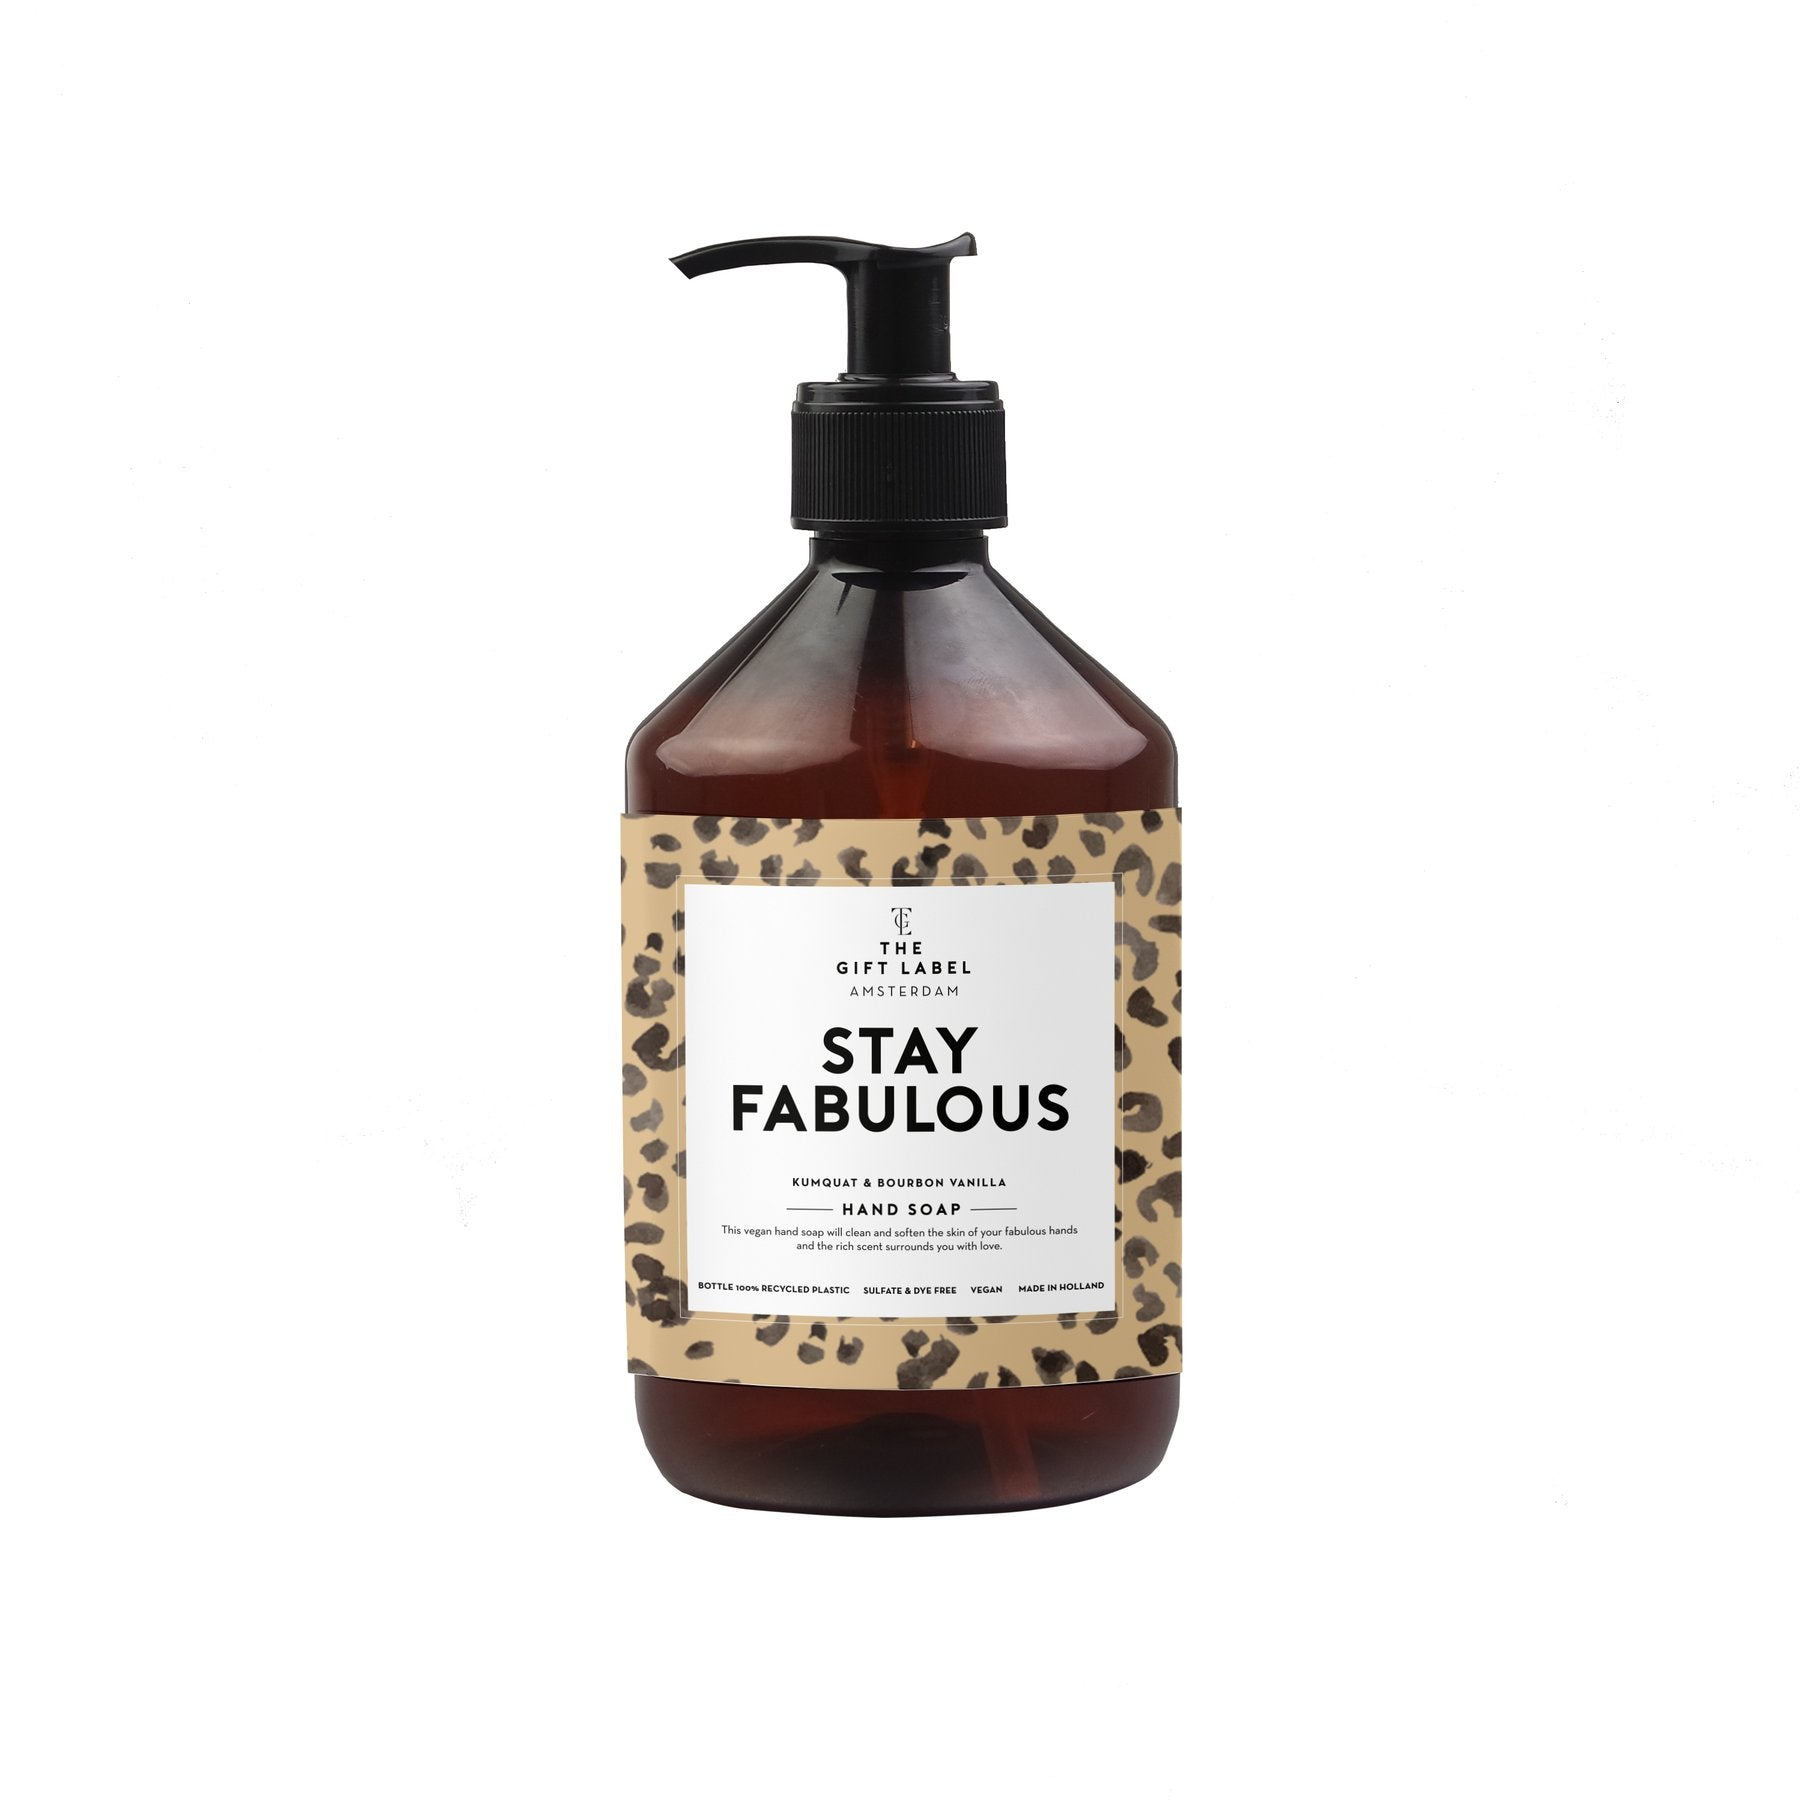 The Gift Label - Hand wash 'Stay Fabulous'